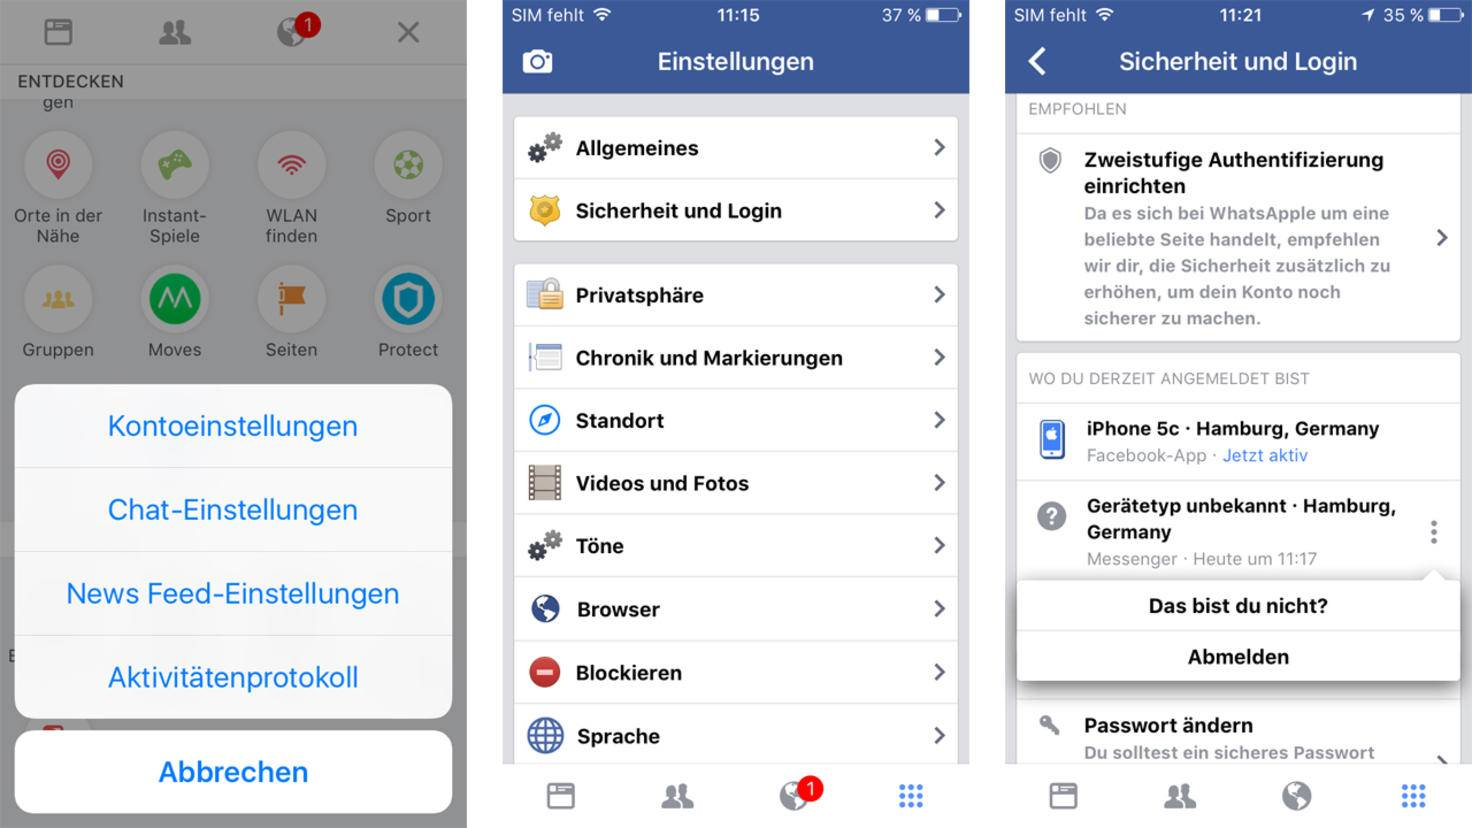 Facebook Messenger abmelden iOS